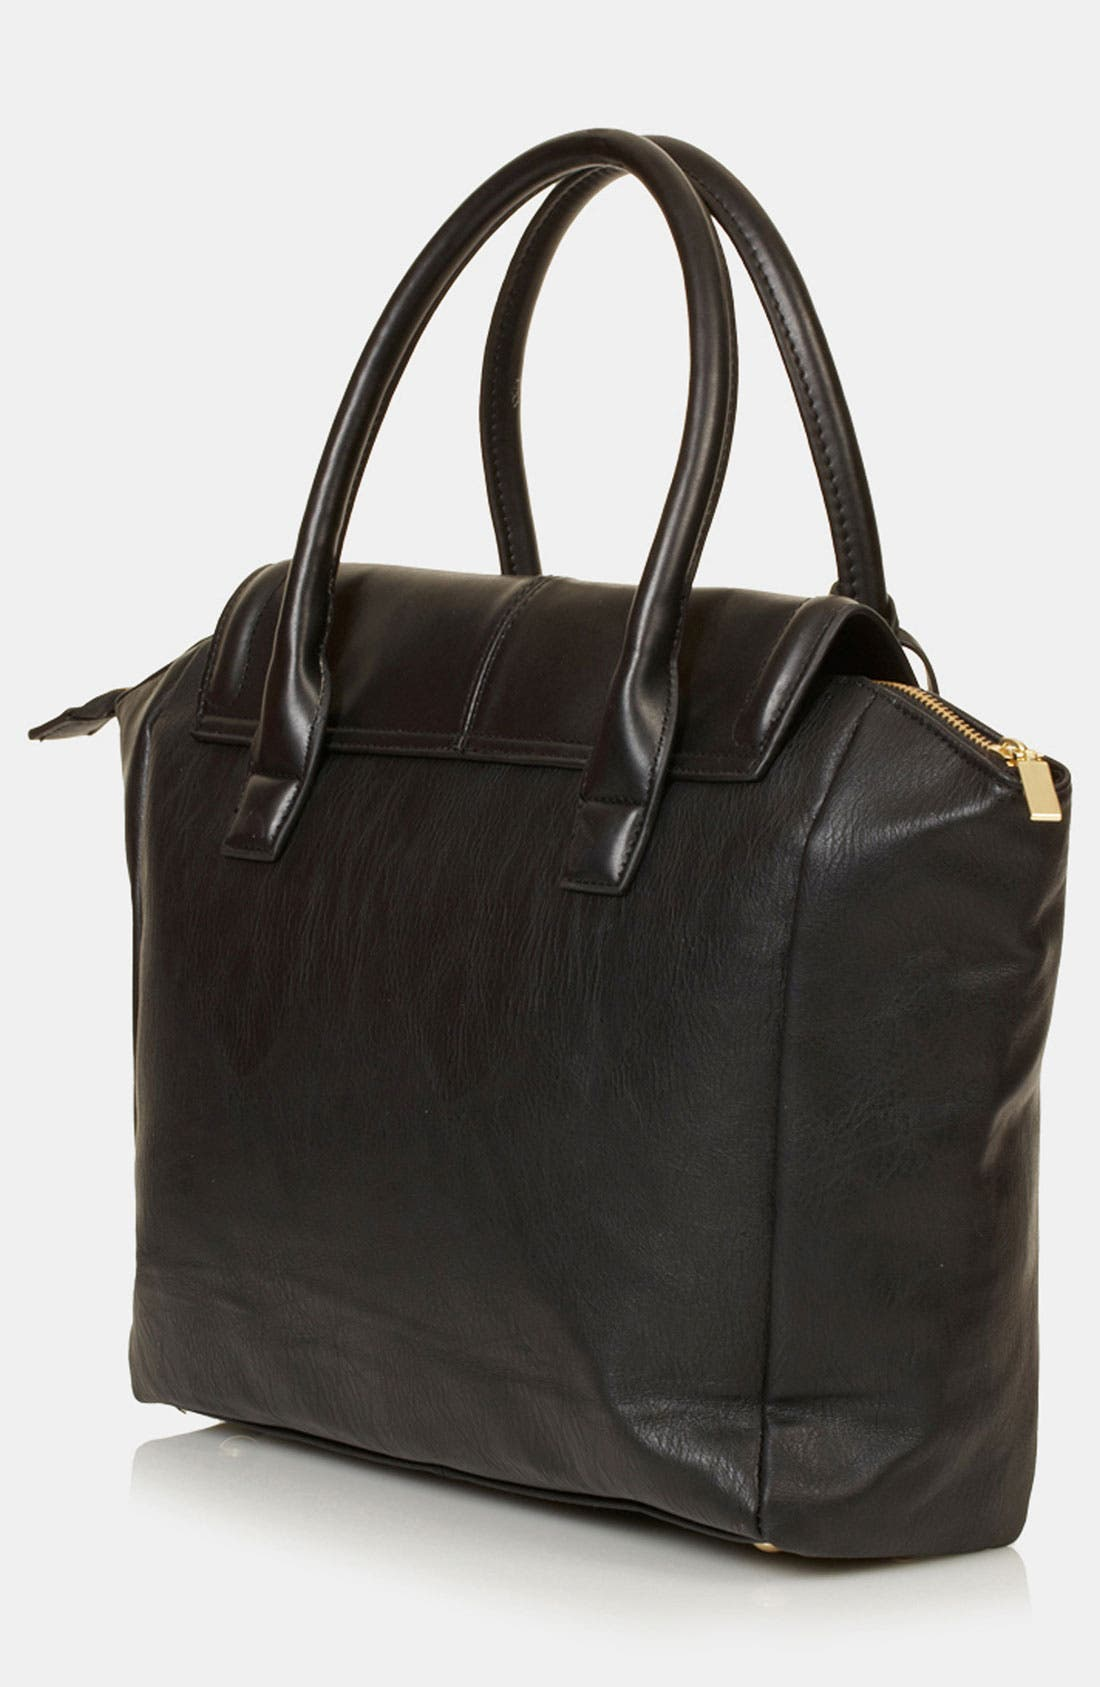 TOPSHOP, Winged Tote, Alternate thumbnail 2, color, 001